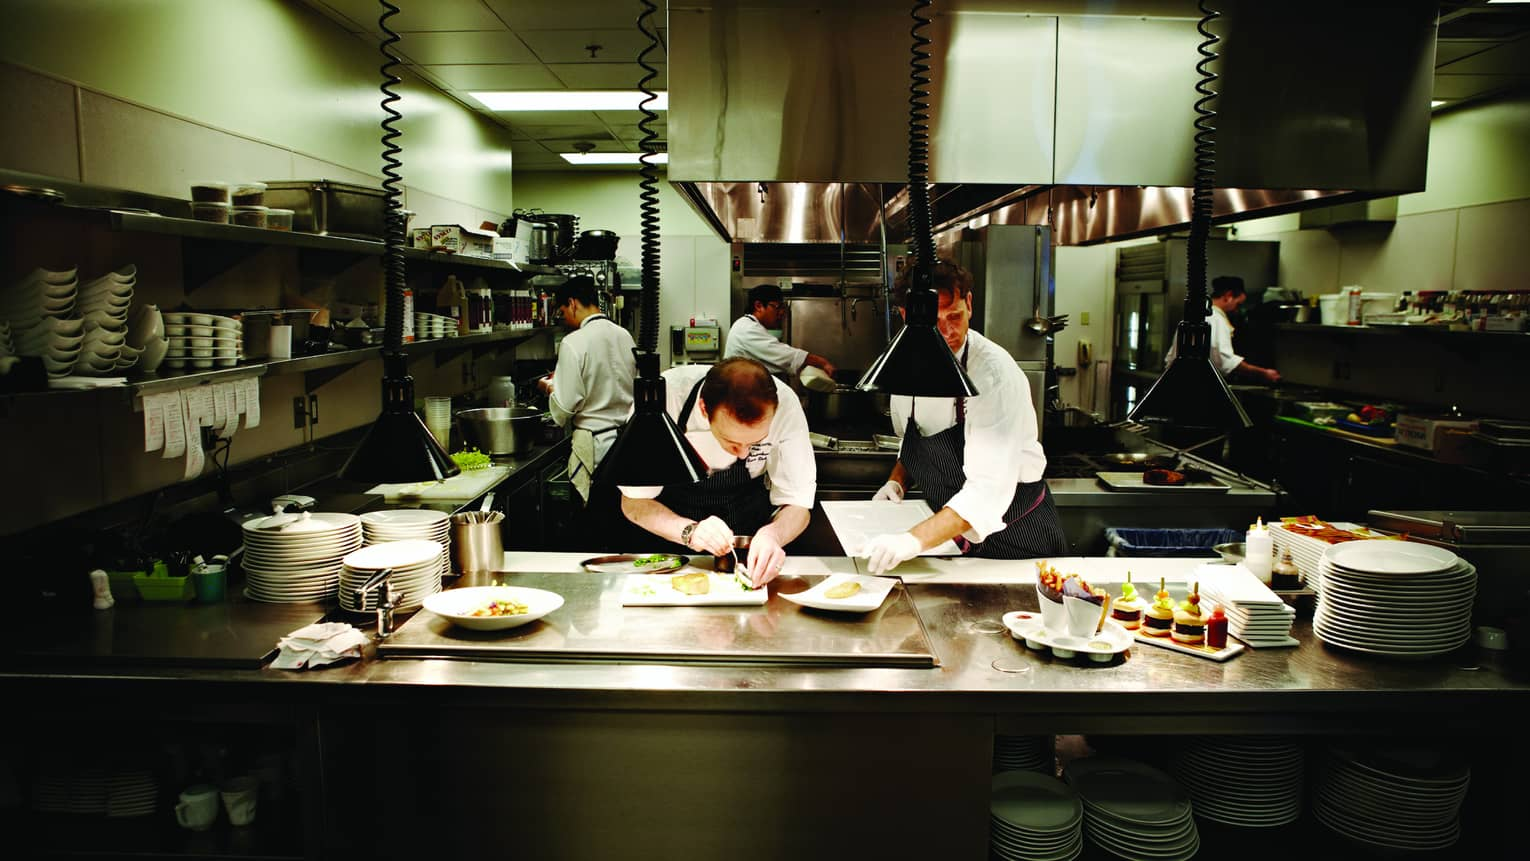 Chefs at work plating gourmet meals in stainless-steel Goldfinch Tavern kitchen